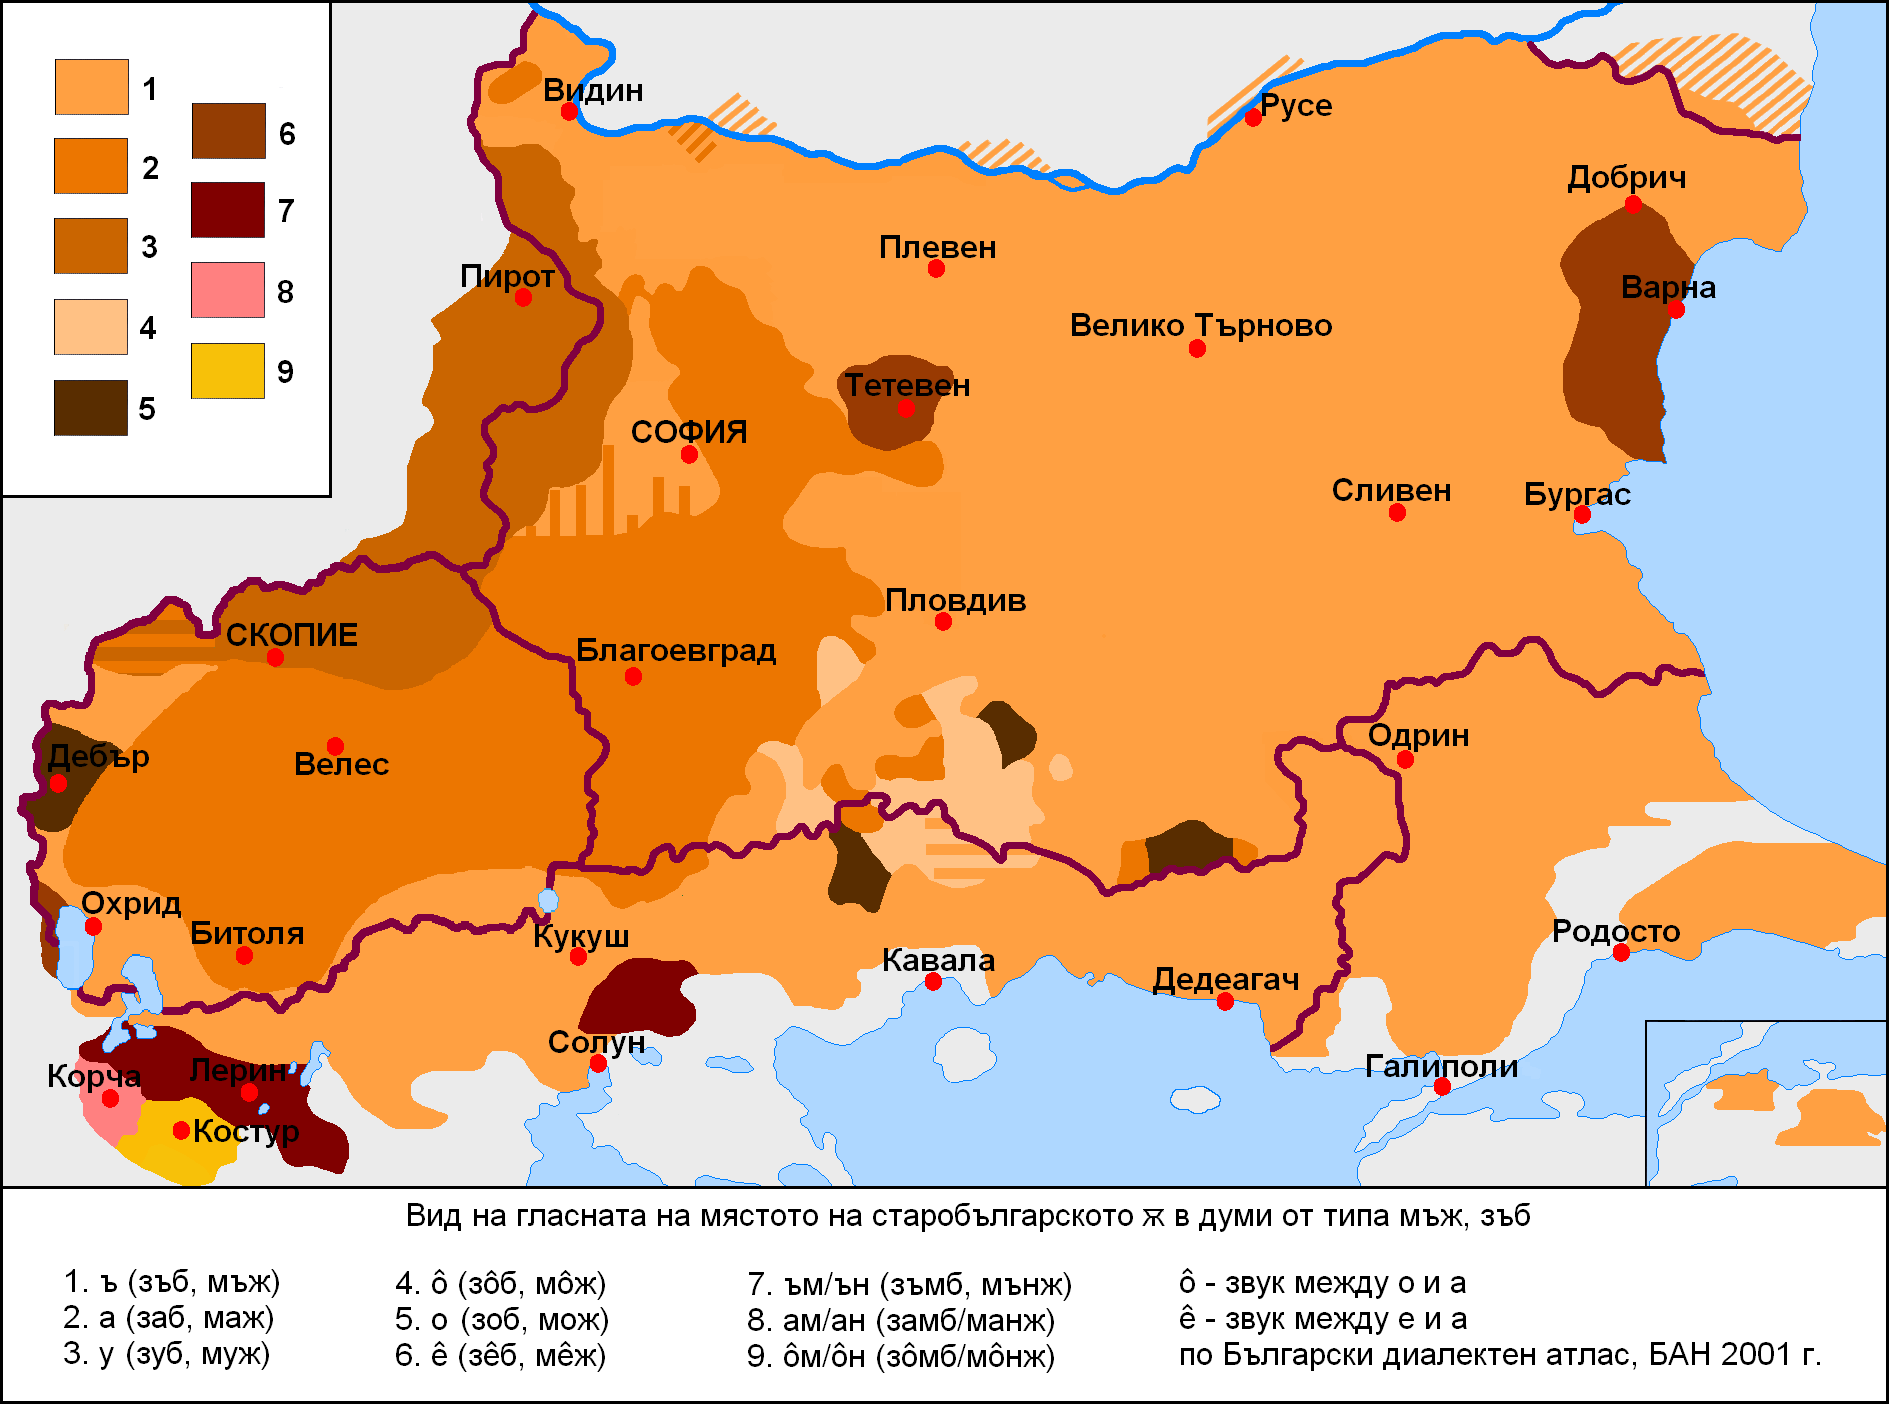 Bulgarian dialect map in early 20th century indicating yat vowel bulgarian dialect map in early century indicating yat vowel isoglosses sciox Image collections